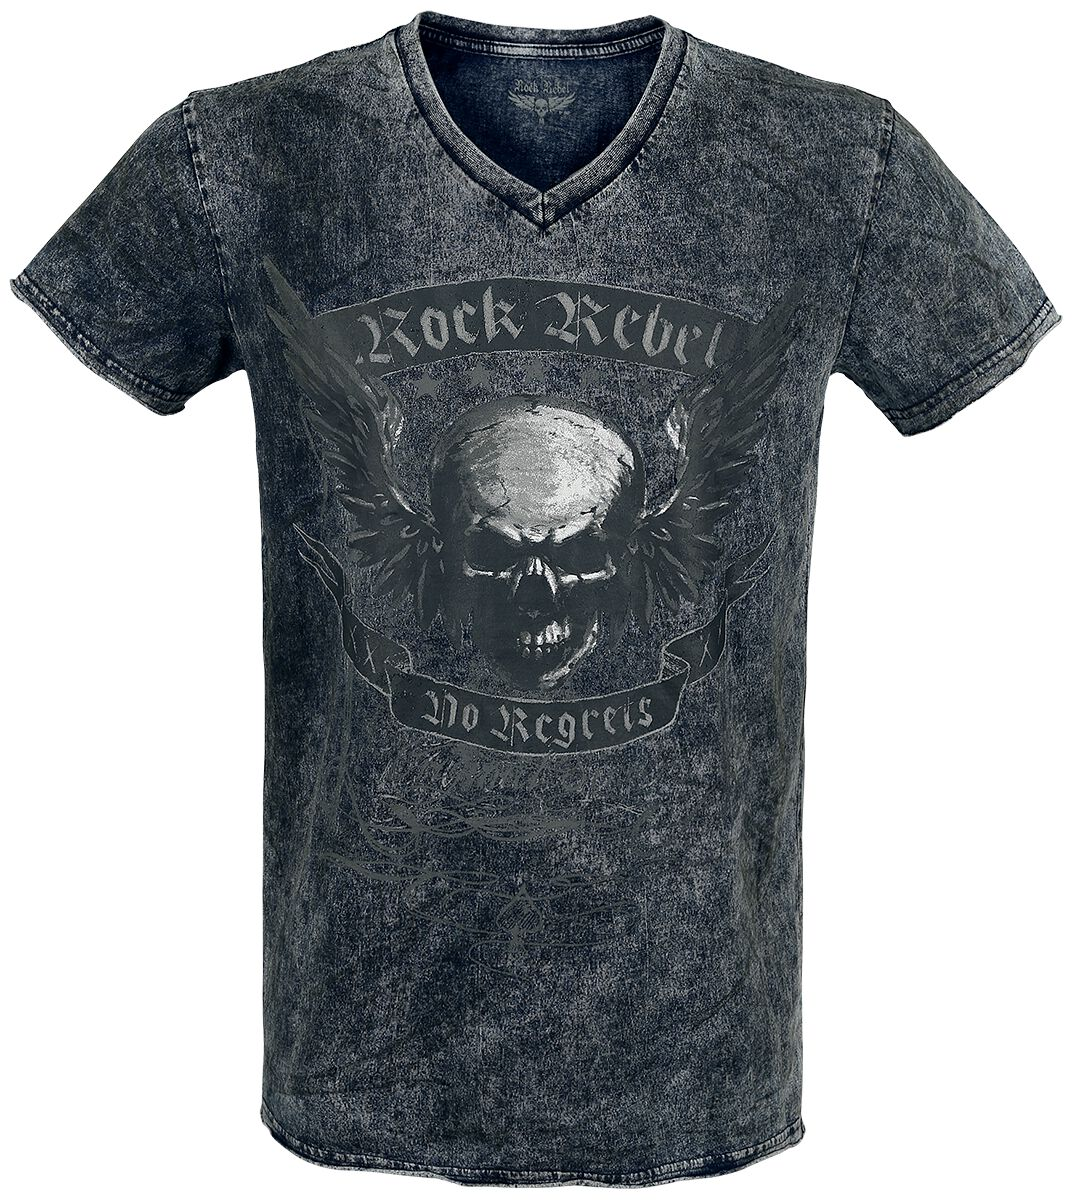 heavy soul rock rebel by emp t shirt emp. Black Bedroom Furniture Sets. Home Design Ideas